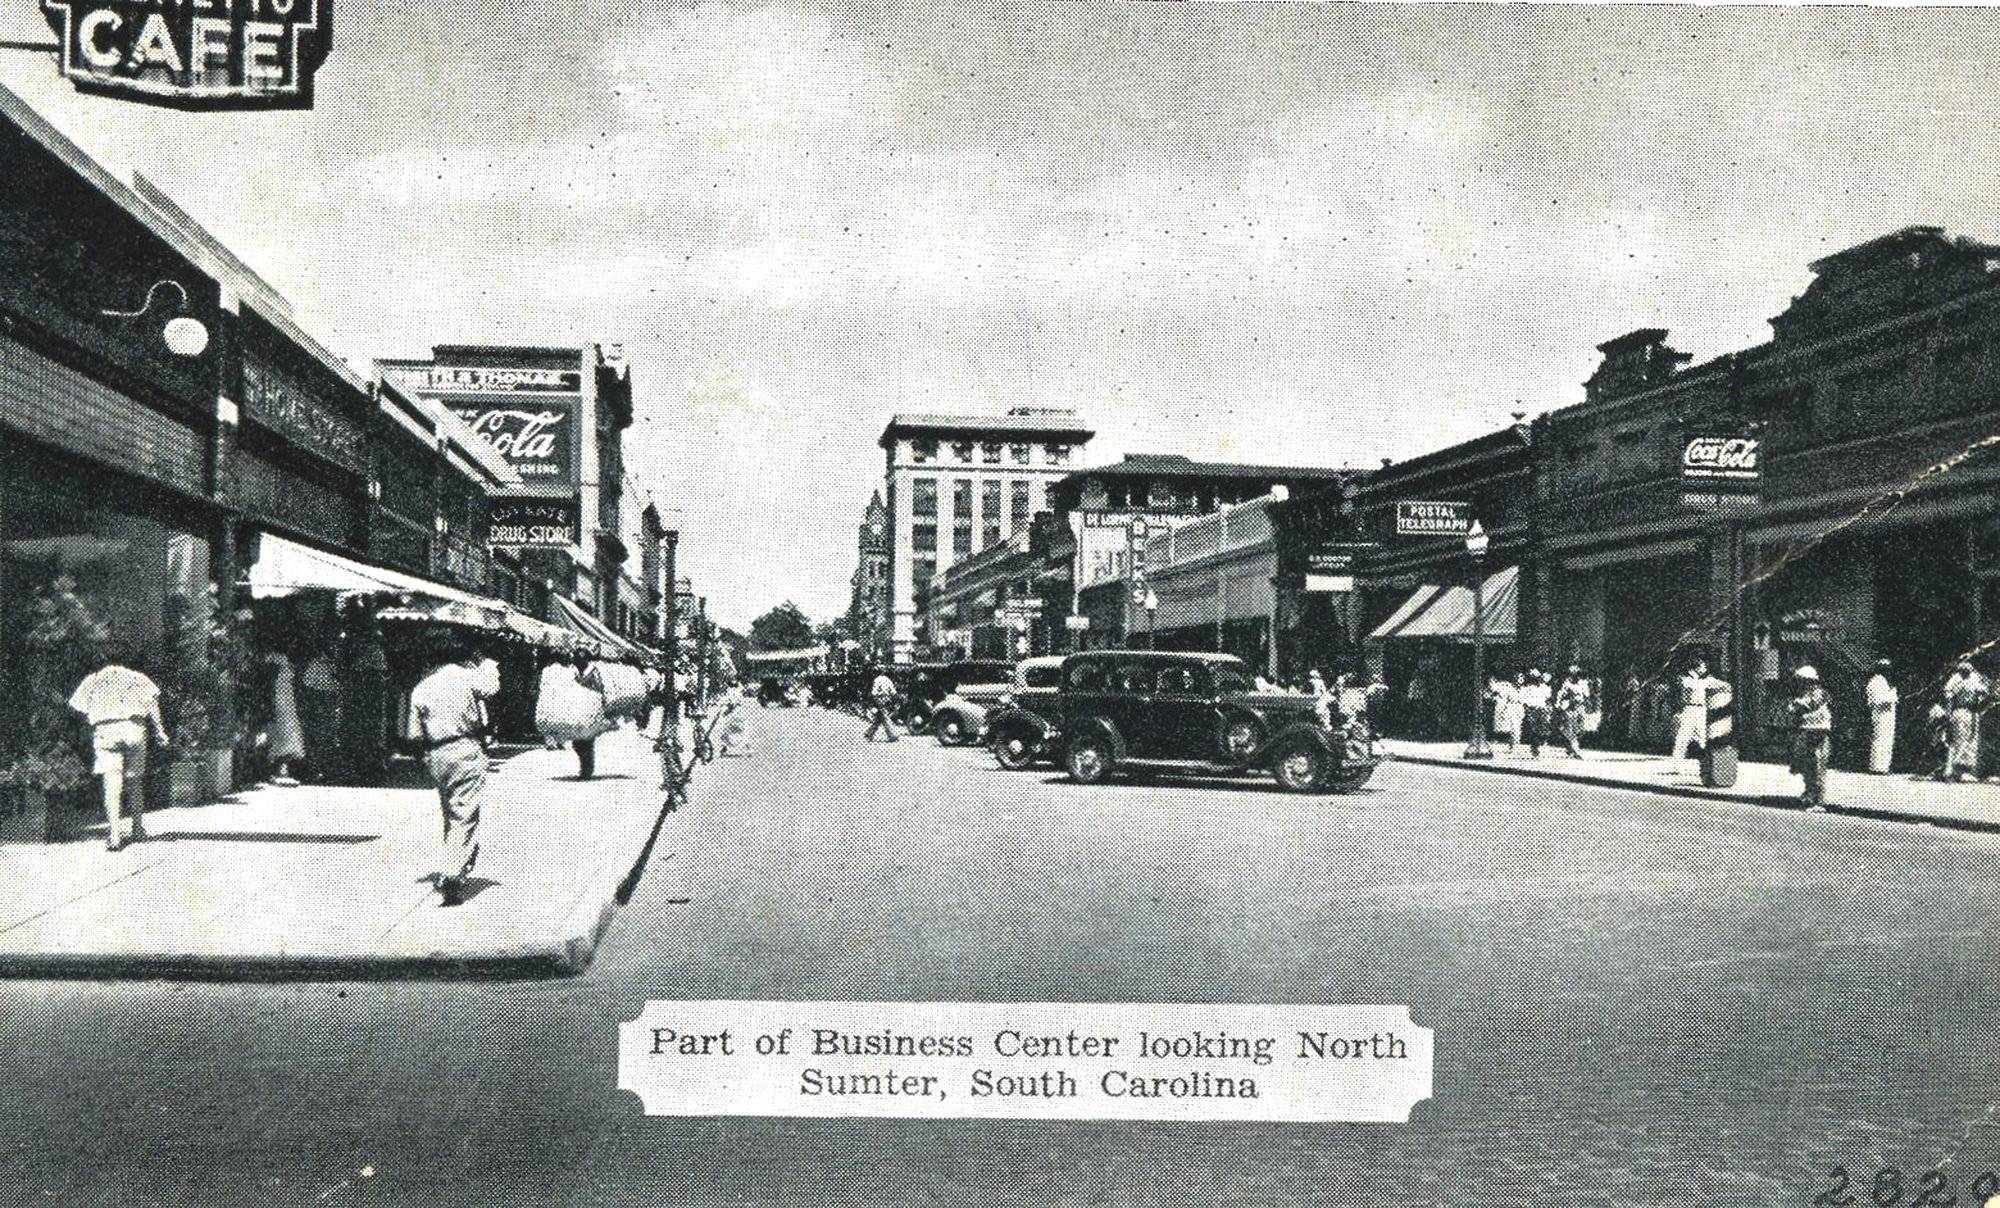 The popular Palmetto Cafe was originally located at the corner of South Main and Dugan streets, near where Sumter Cut-Rate Drug Store now stands. Part of its sign can be seen at top left.